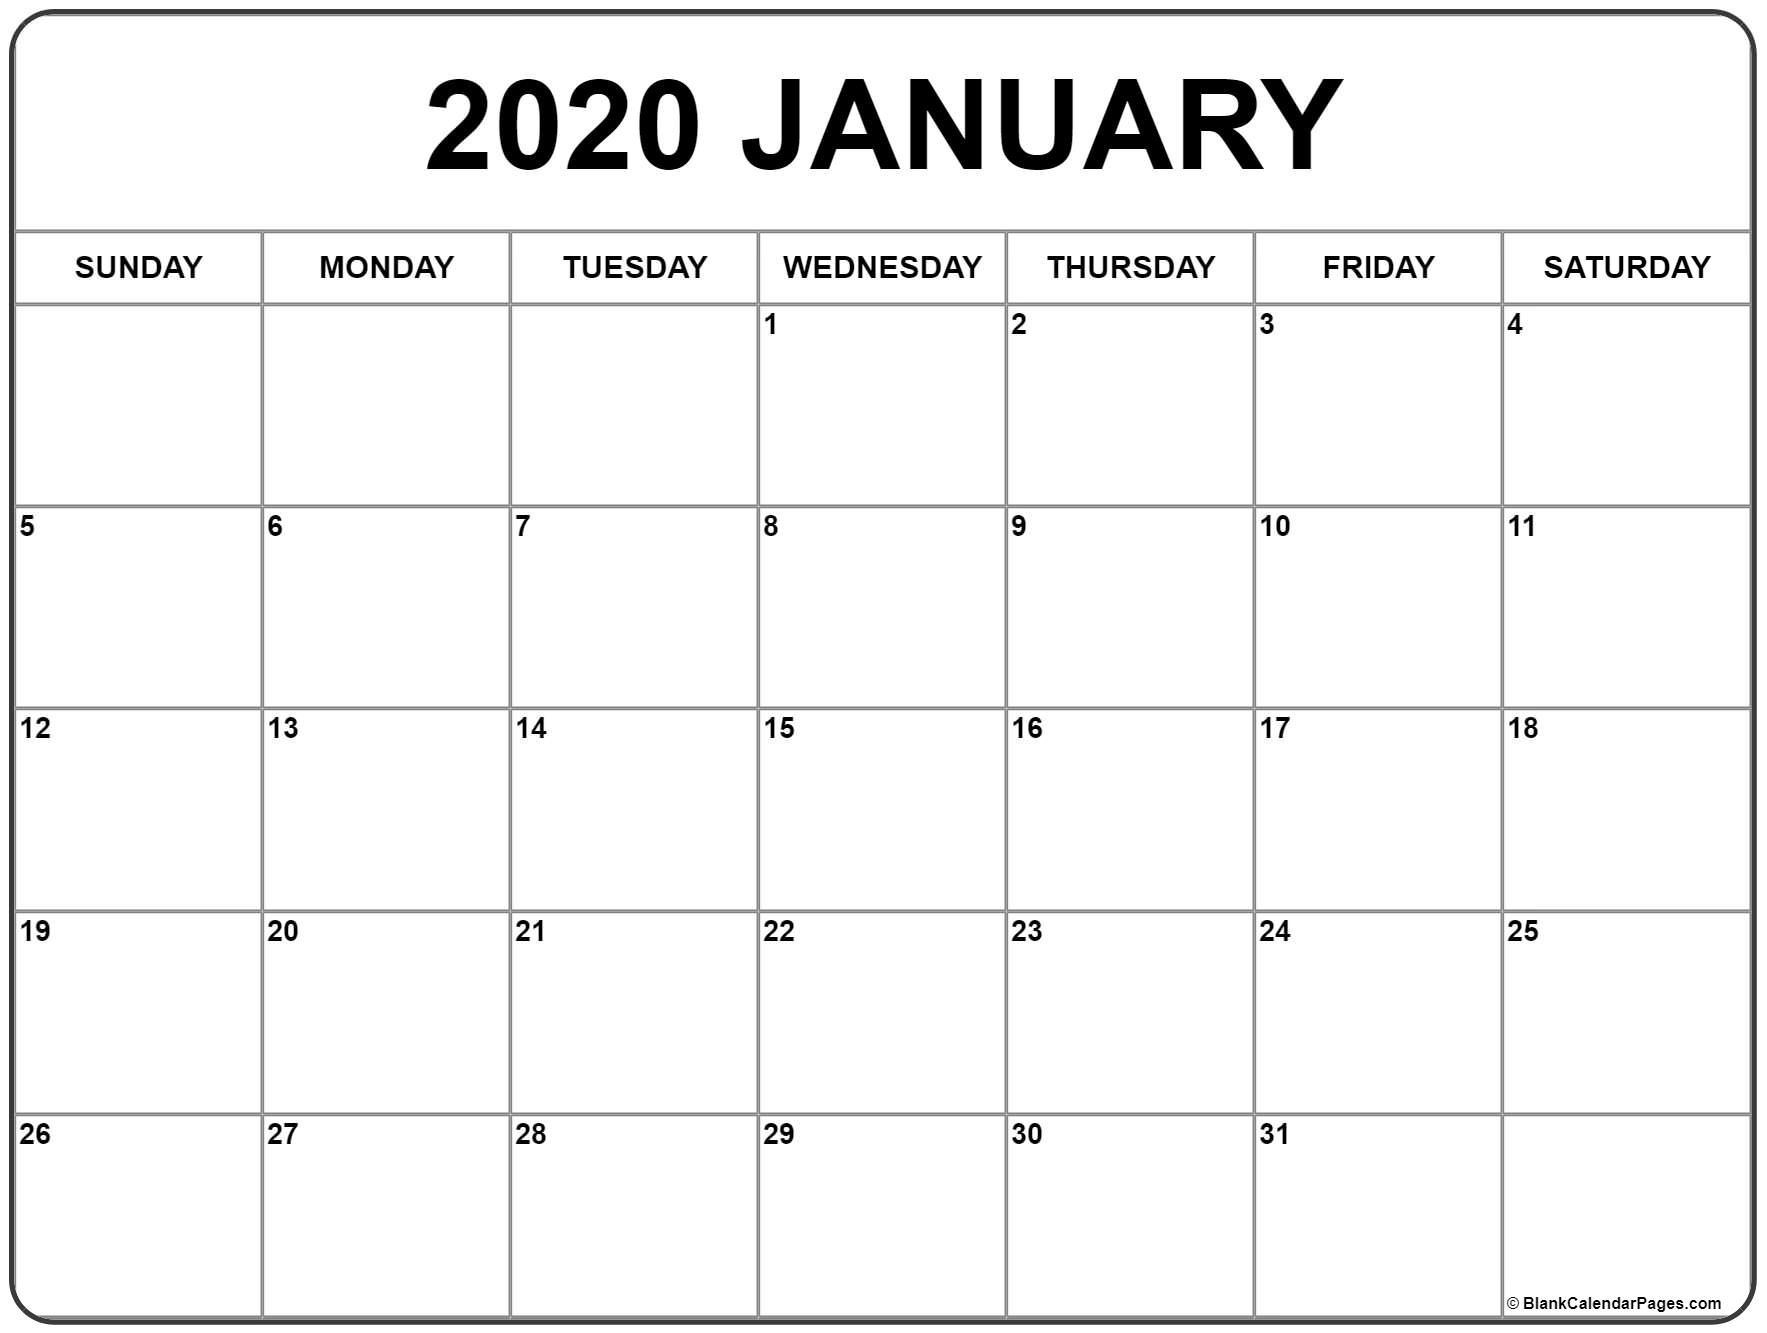 January 2020 Calendar | Free Printable Monthly Calendars-January 2020 Calendar Dates